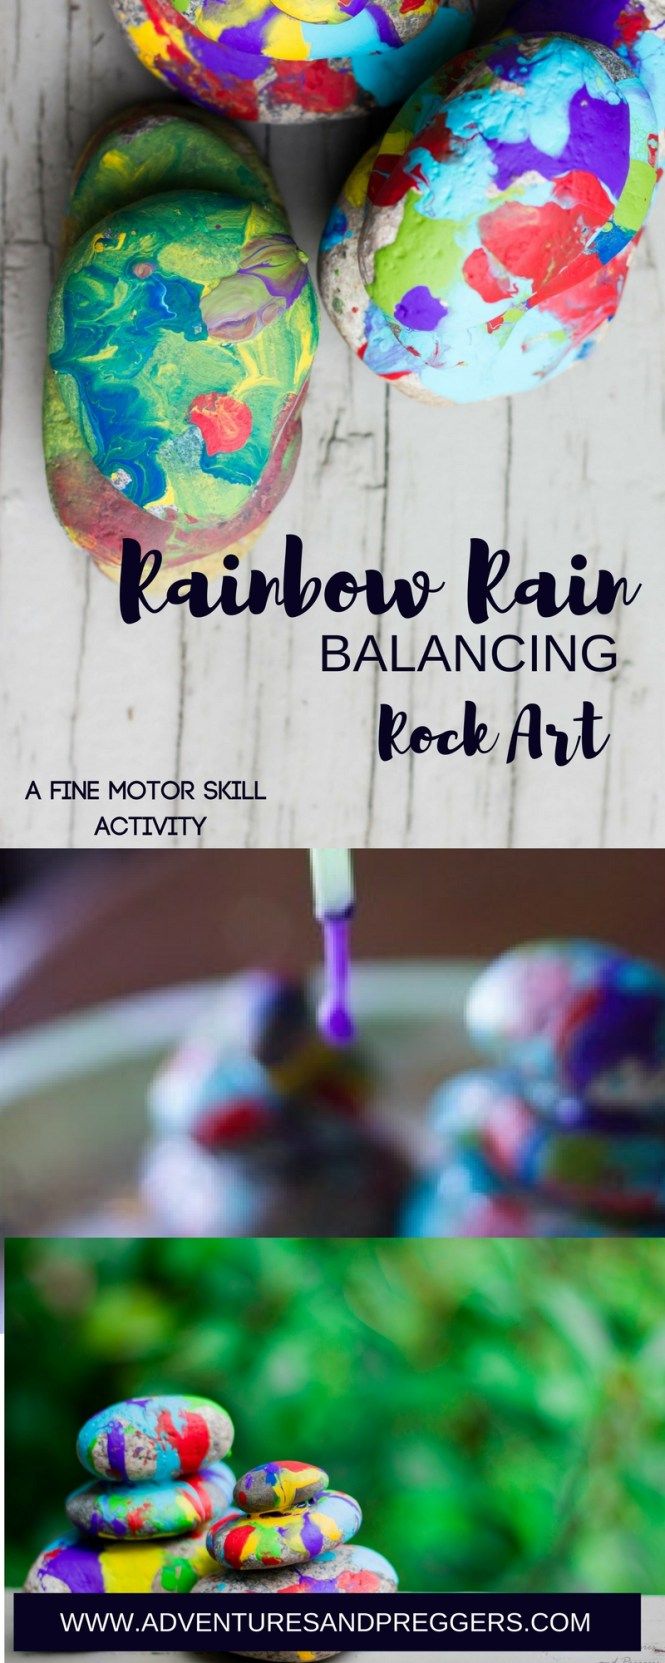 Rainbow Rain Rock Art Fine Motor Skill Activity. Crafts kids love. Click to read how!